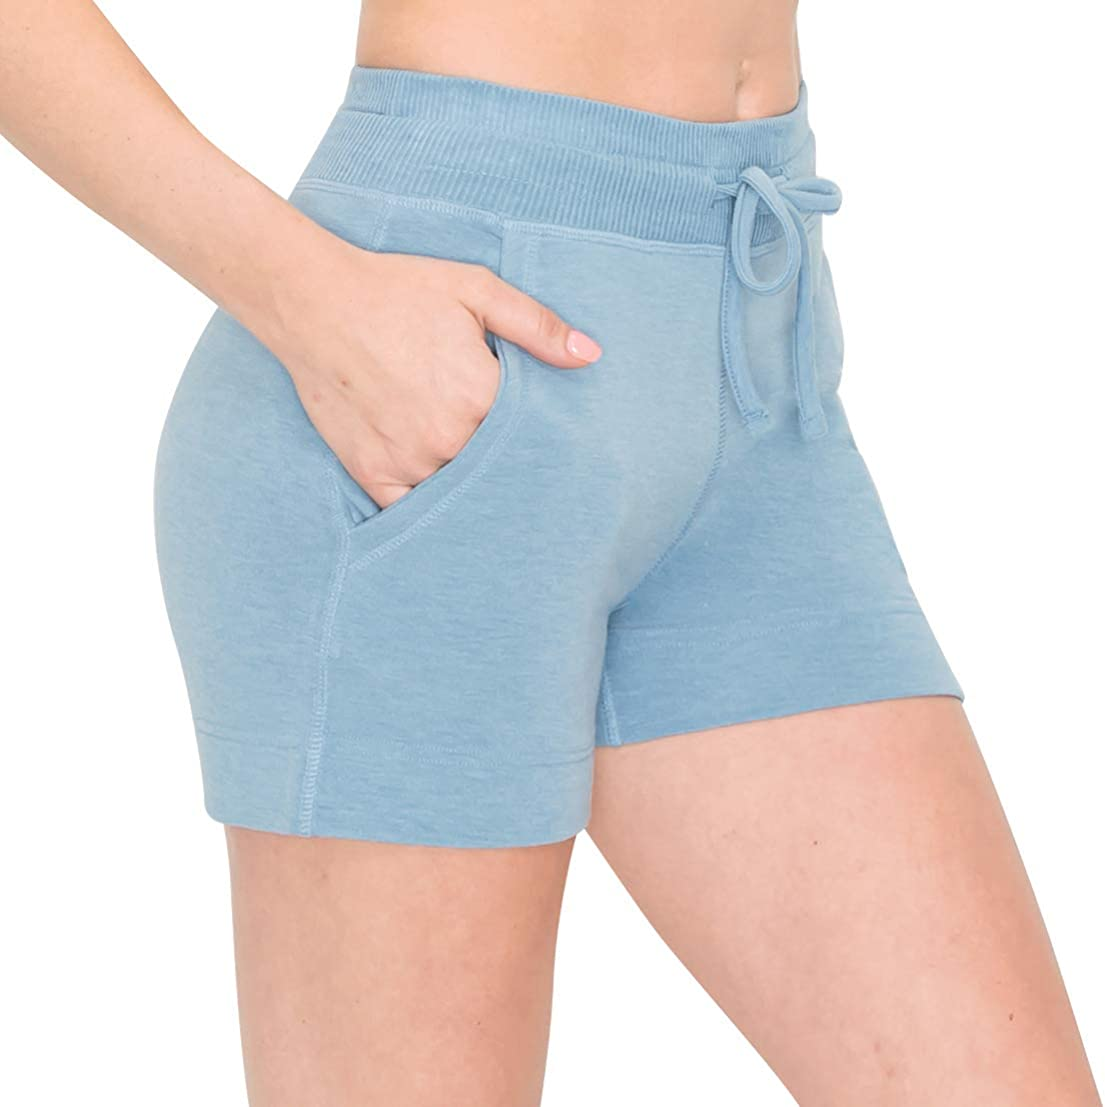 ALWAYS Women's French Terry Shorts - Casual Elastic Drawstring Lounge Pajama Shorts with Pockets